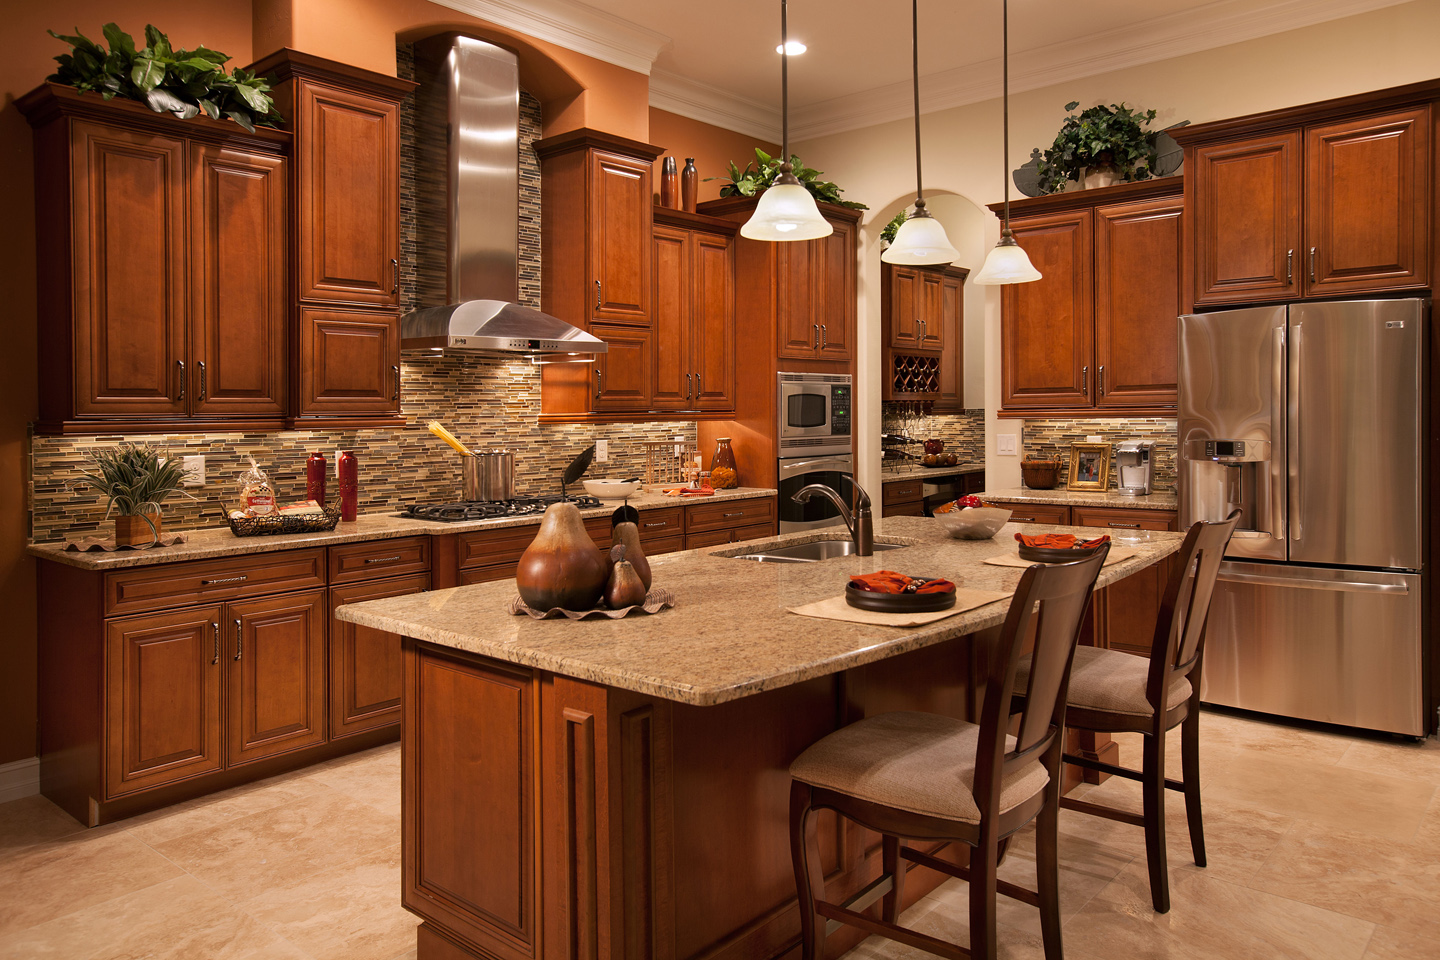 Fiddler s creek announces washington model open in chiasso for Kitchen modeler